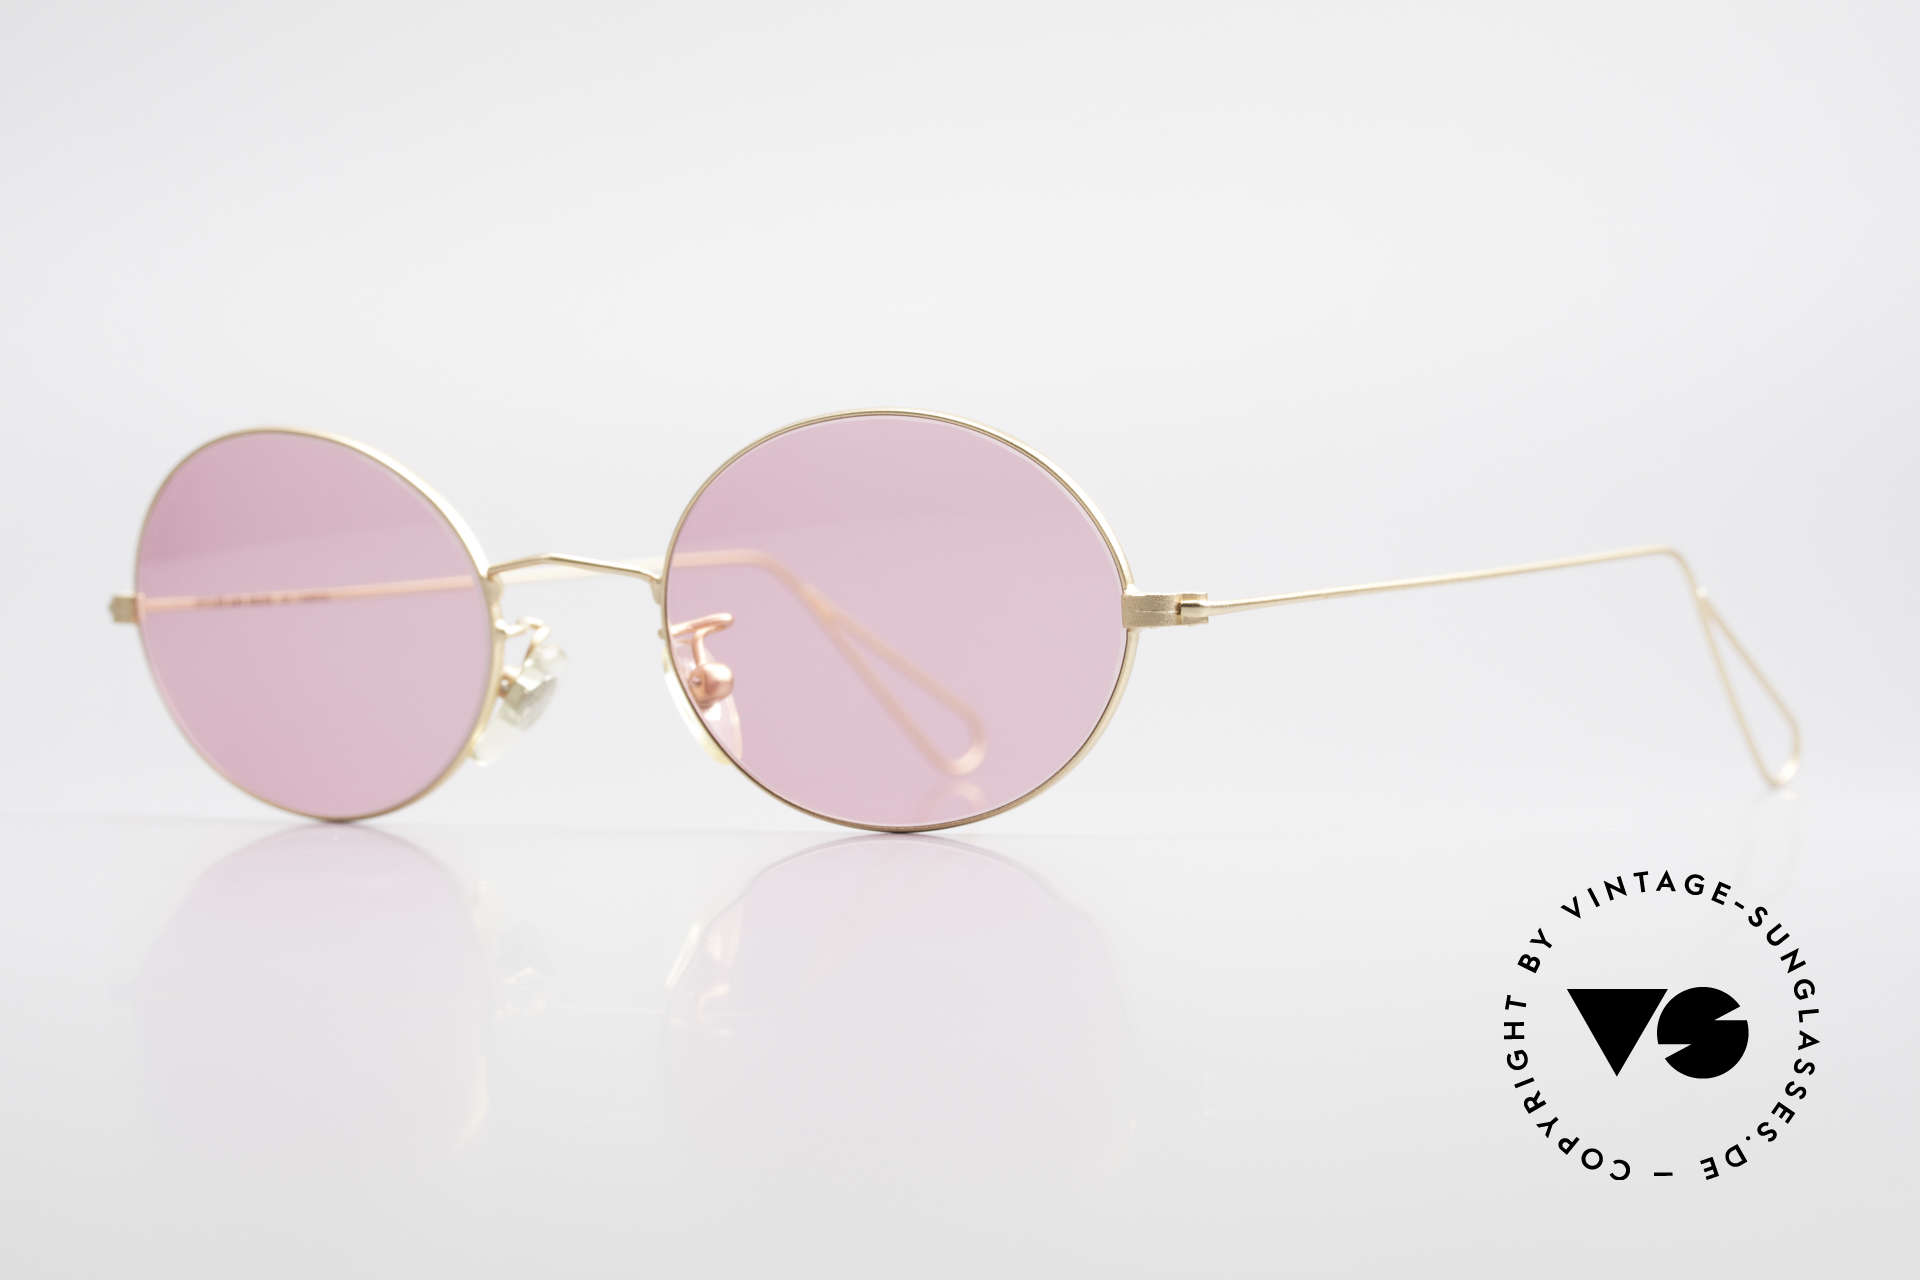 Cutler And Gross 0305 Oval Vintage 90's Sunglasses, stylish & distinctive in absence of an ostentatious logo, Made for Men and Women